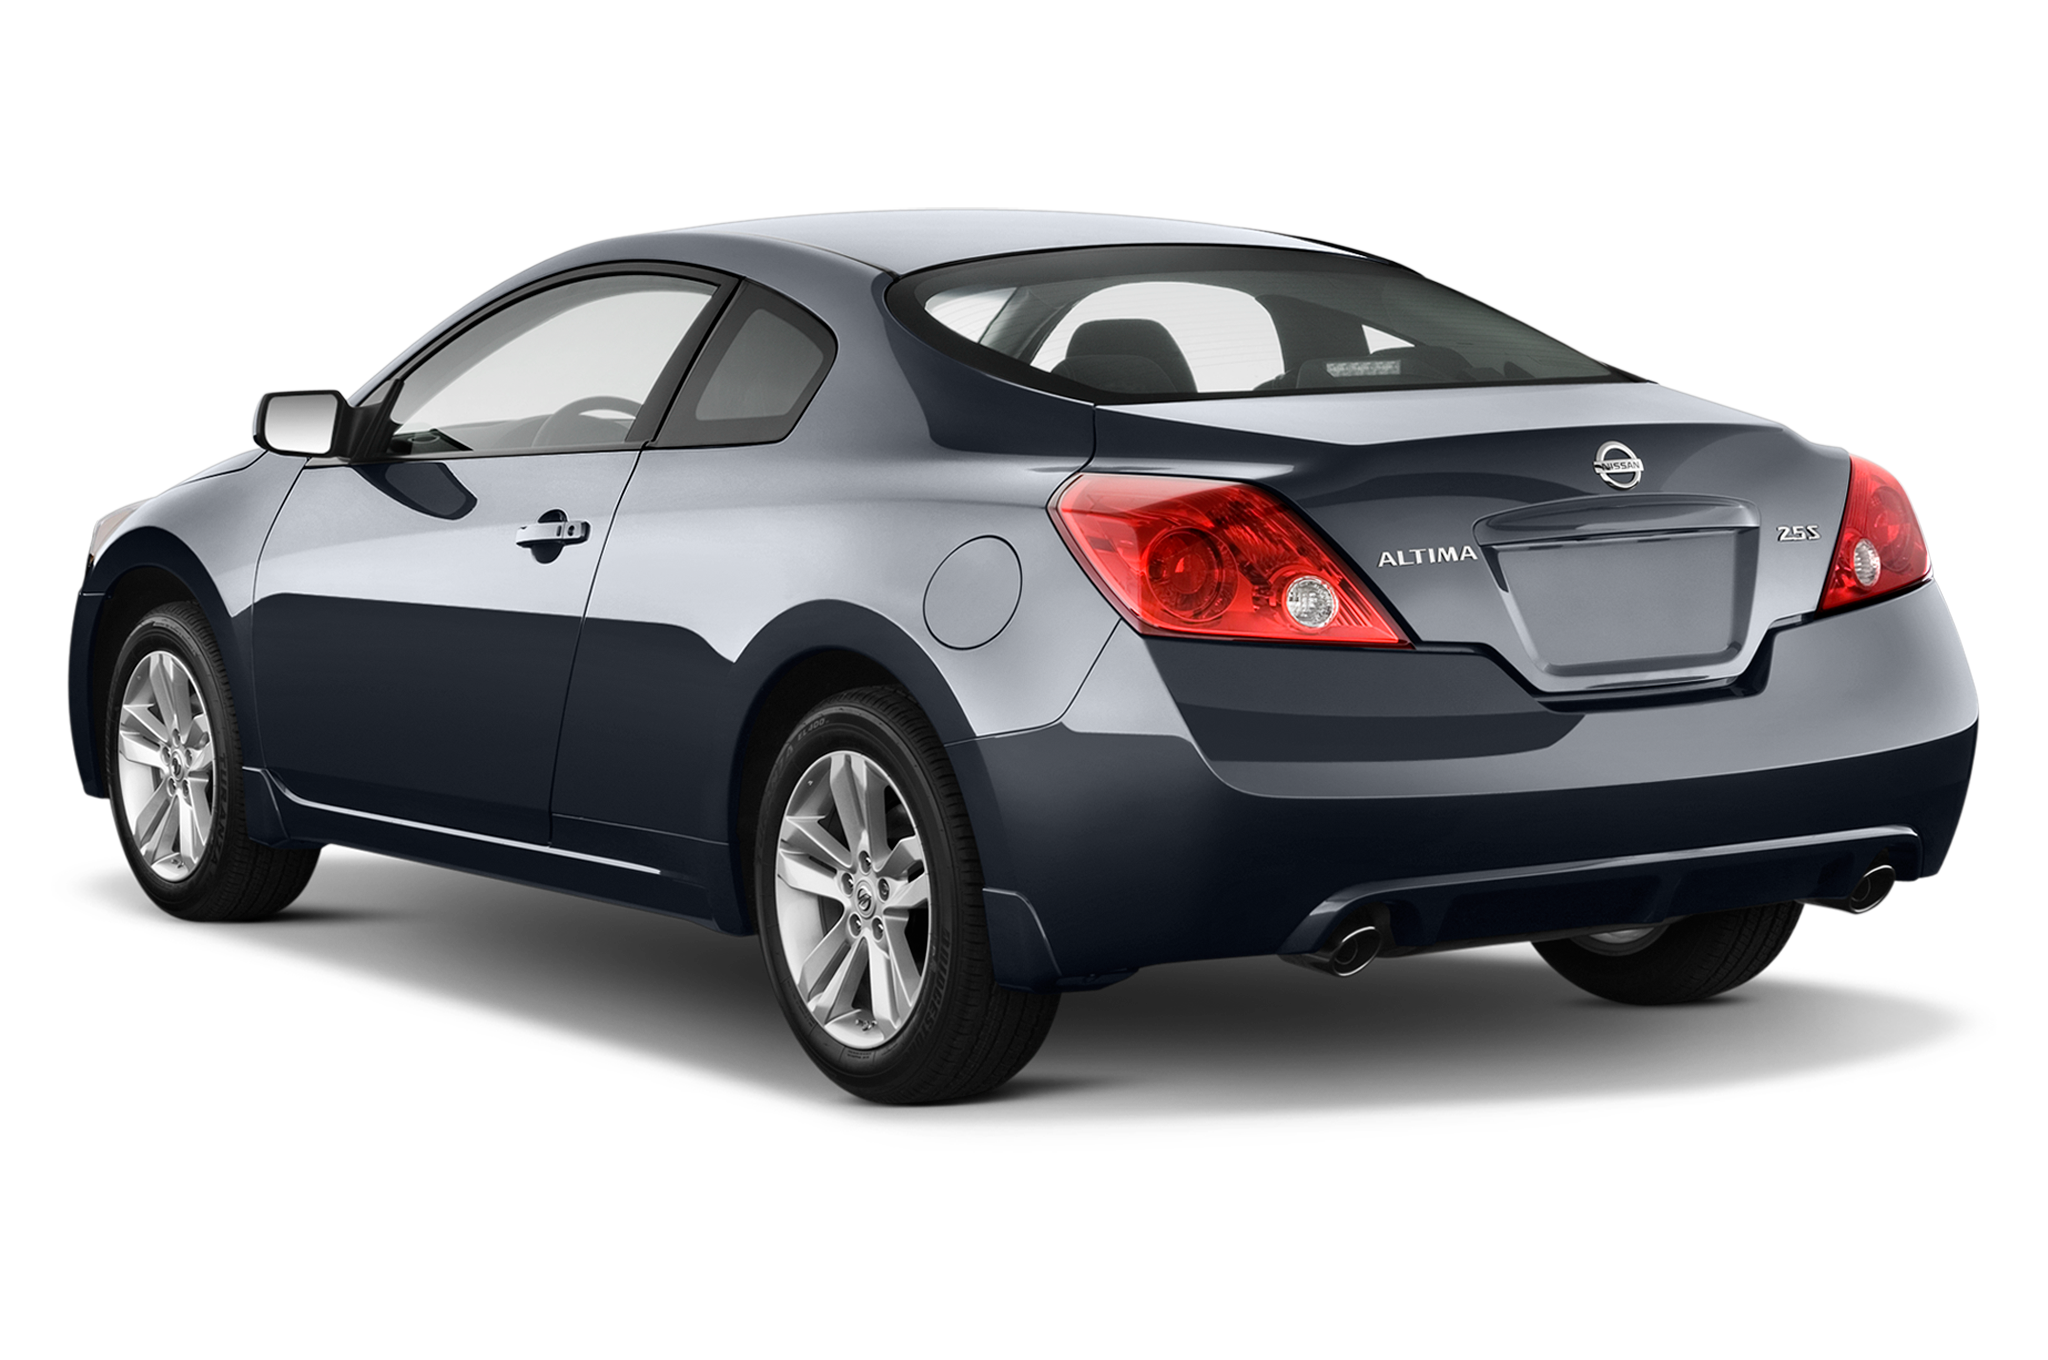 30 Great 2010 Nissan Altima Coupe Concept by 2010 Nissan Altima Coupe